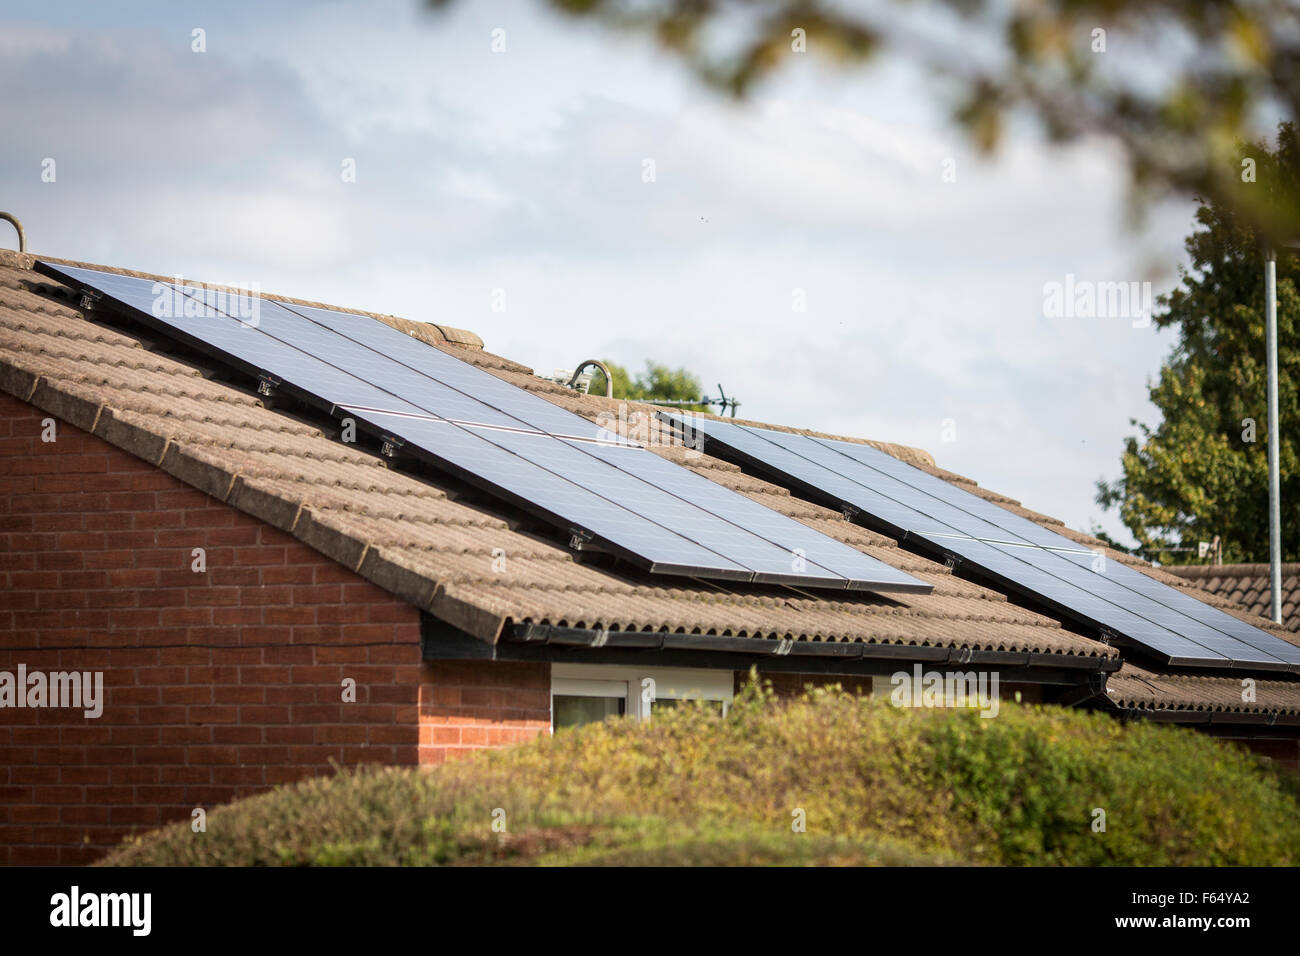 solar energy panels on a roof - Stock Image